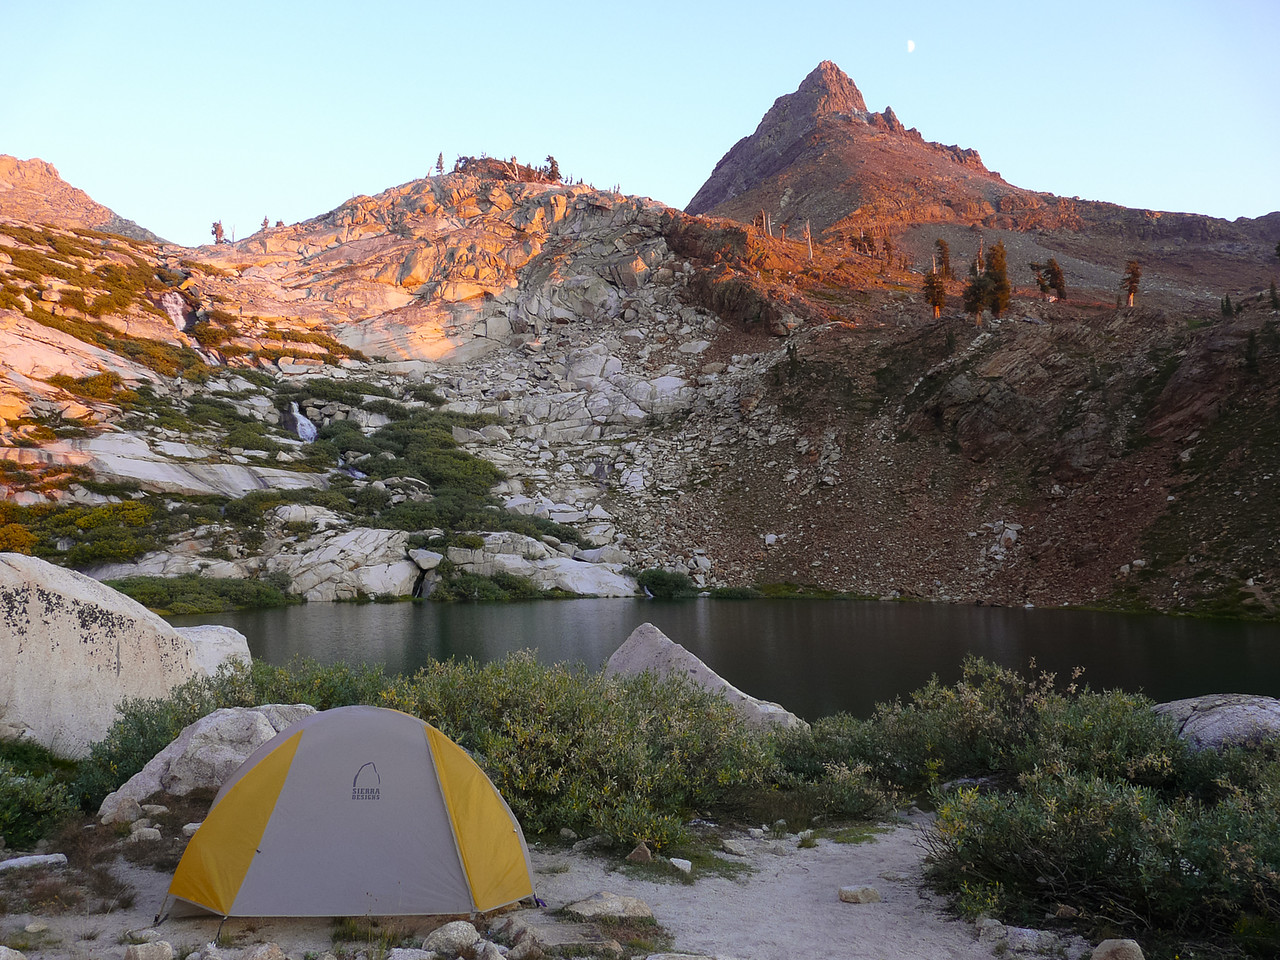 Camp at the Lower Monarch Lake that evening.